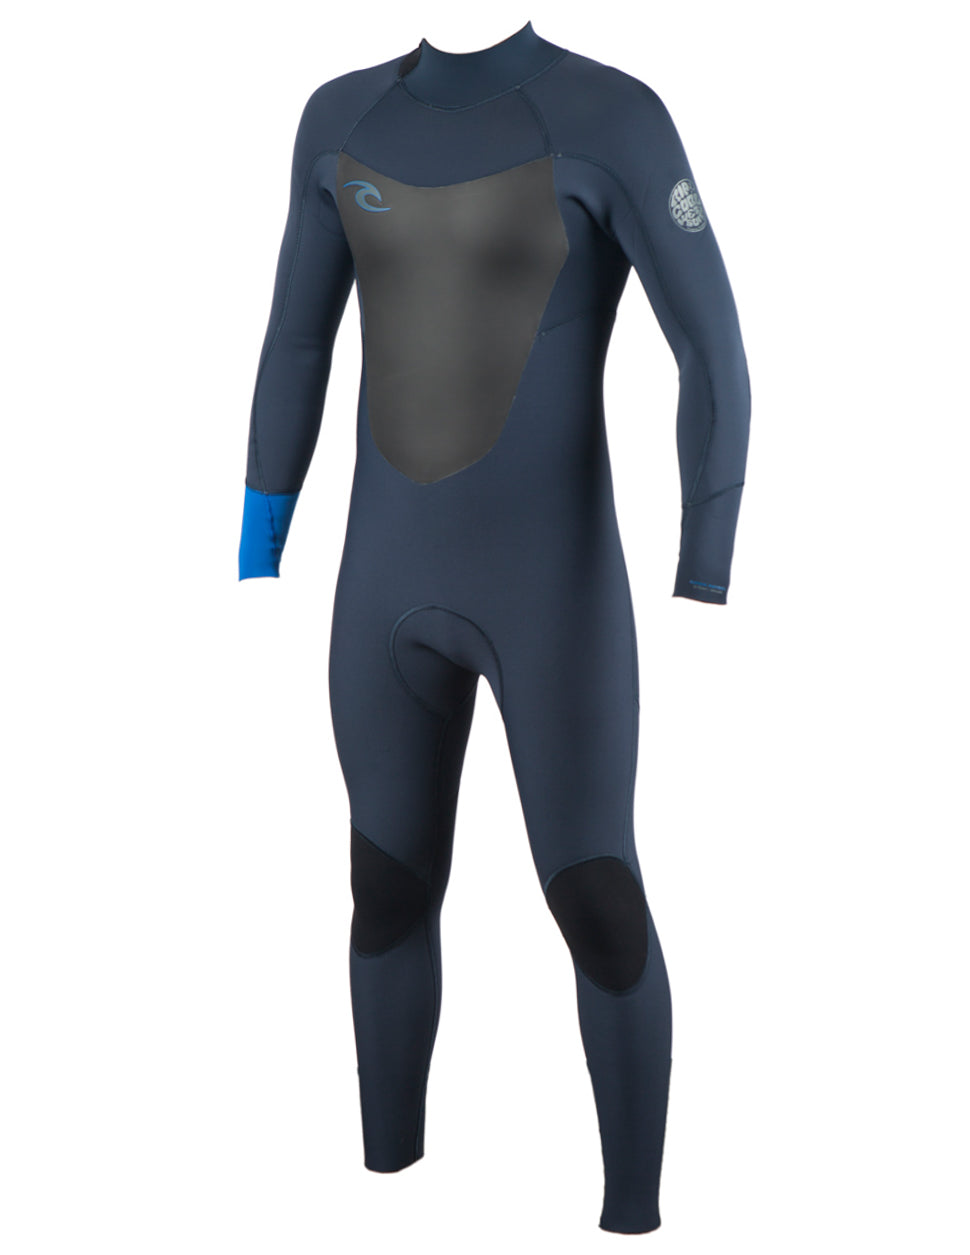 Rip Curl Dawn Patrol Back Zip 3/2 Men's Wetsuit